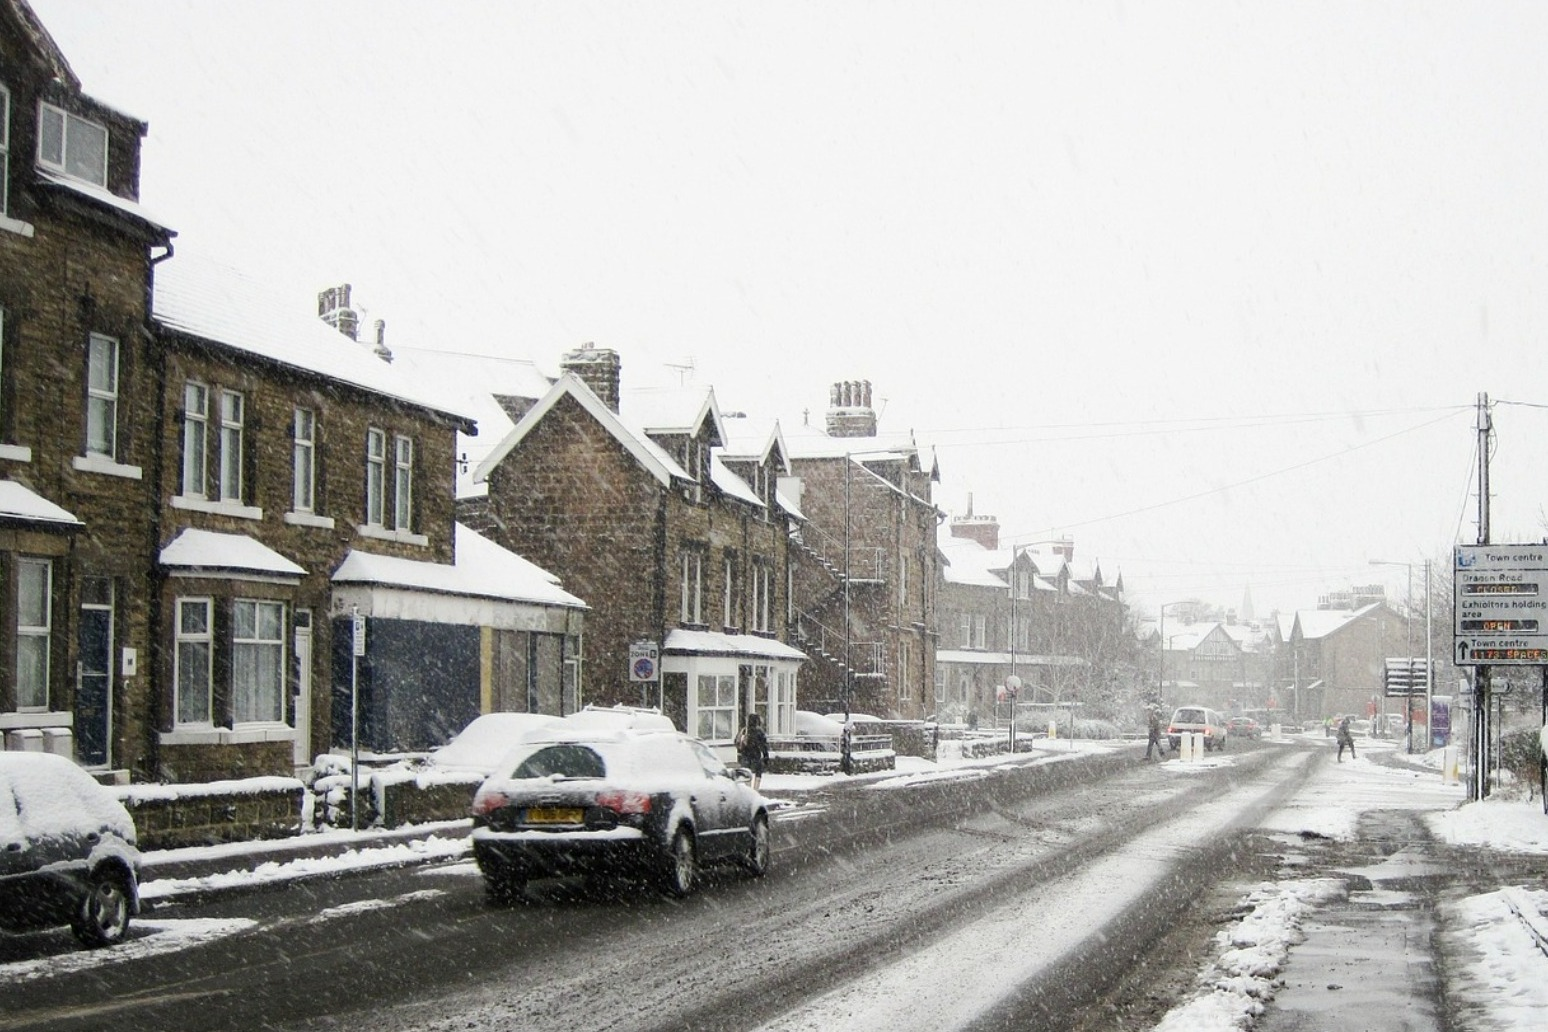 Weather Warnings issued as snow hits the UK